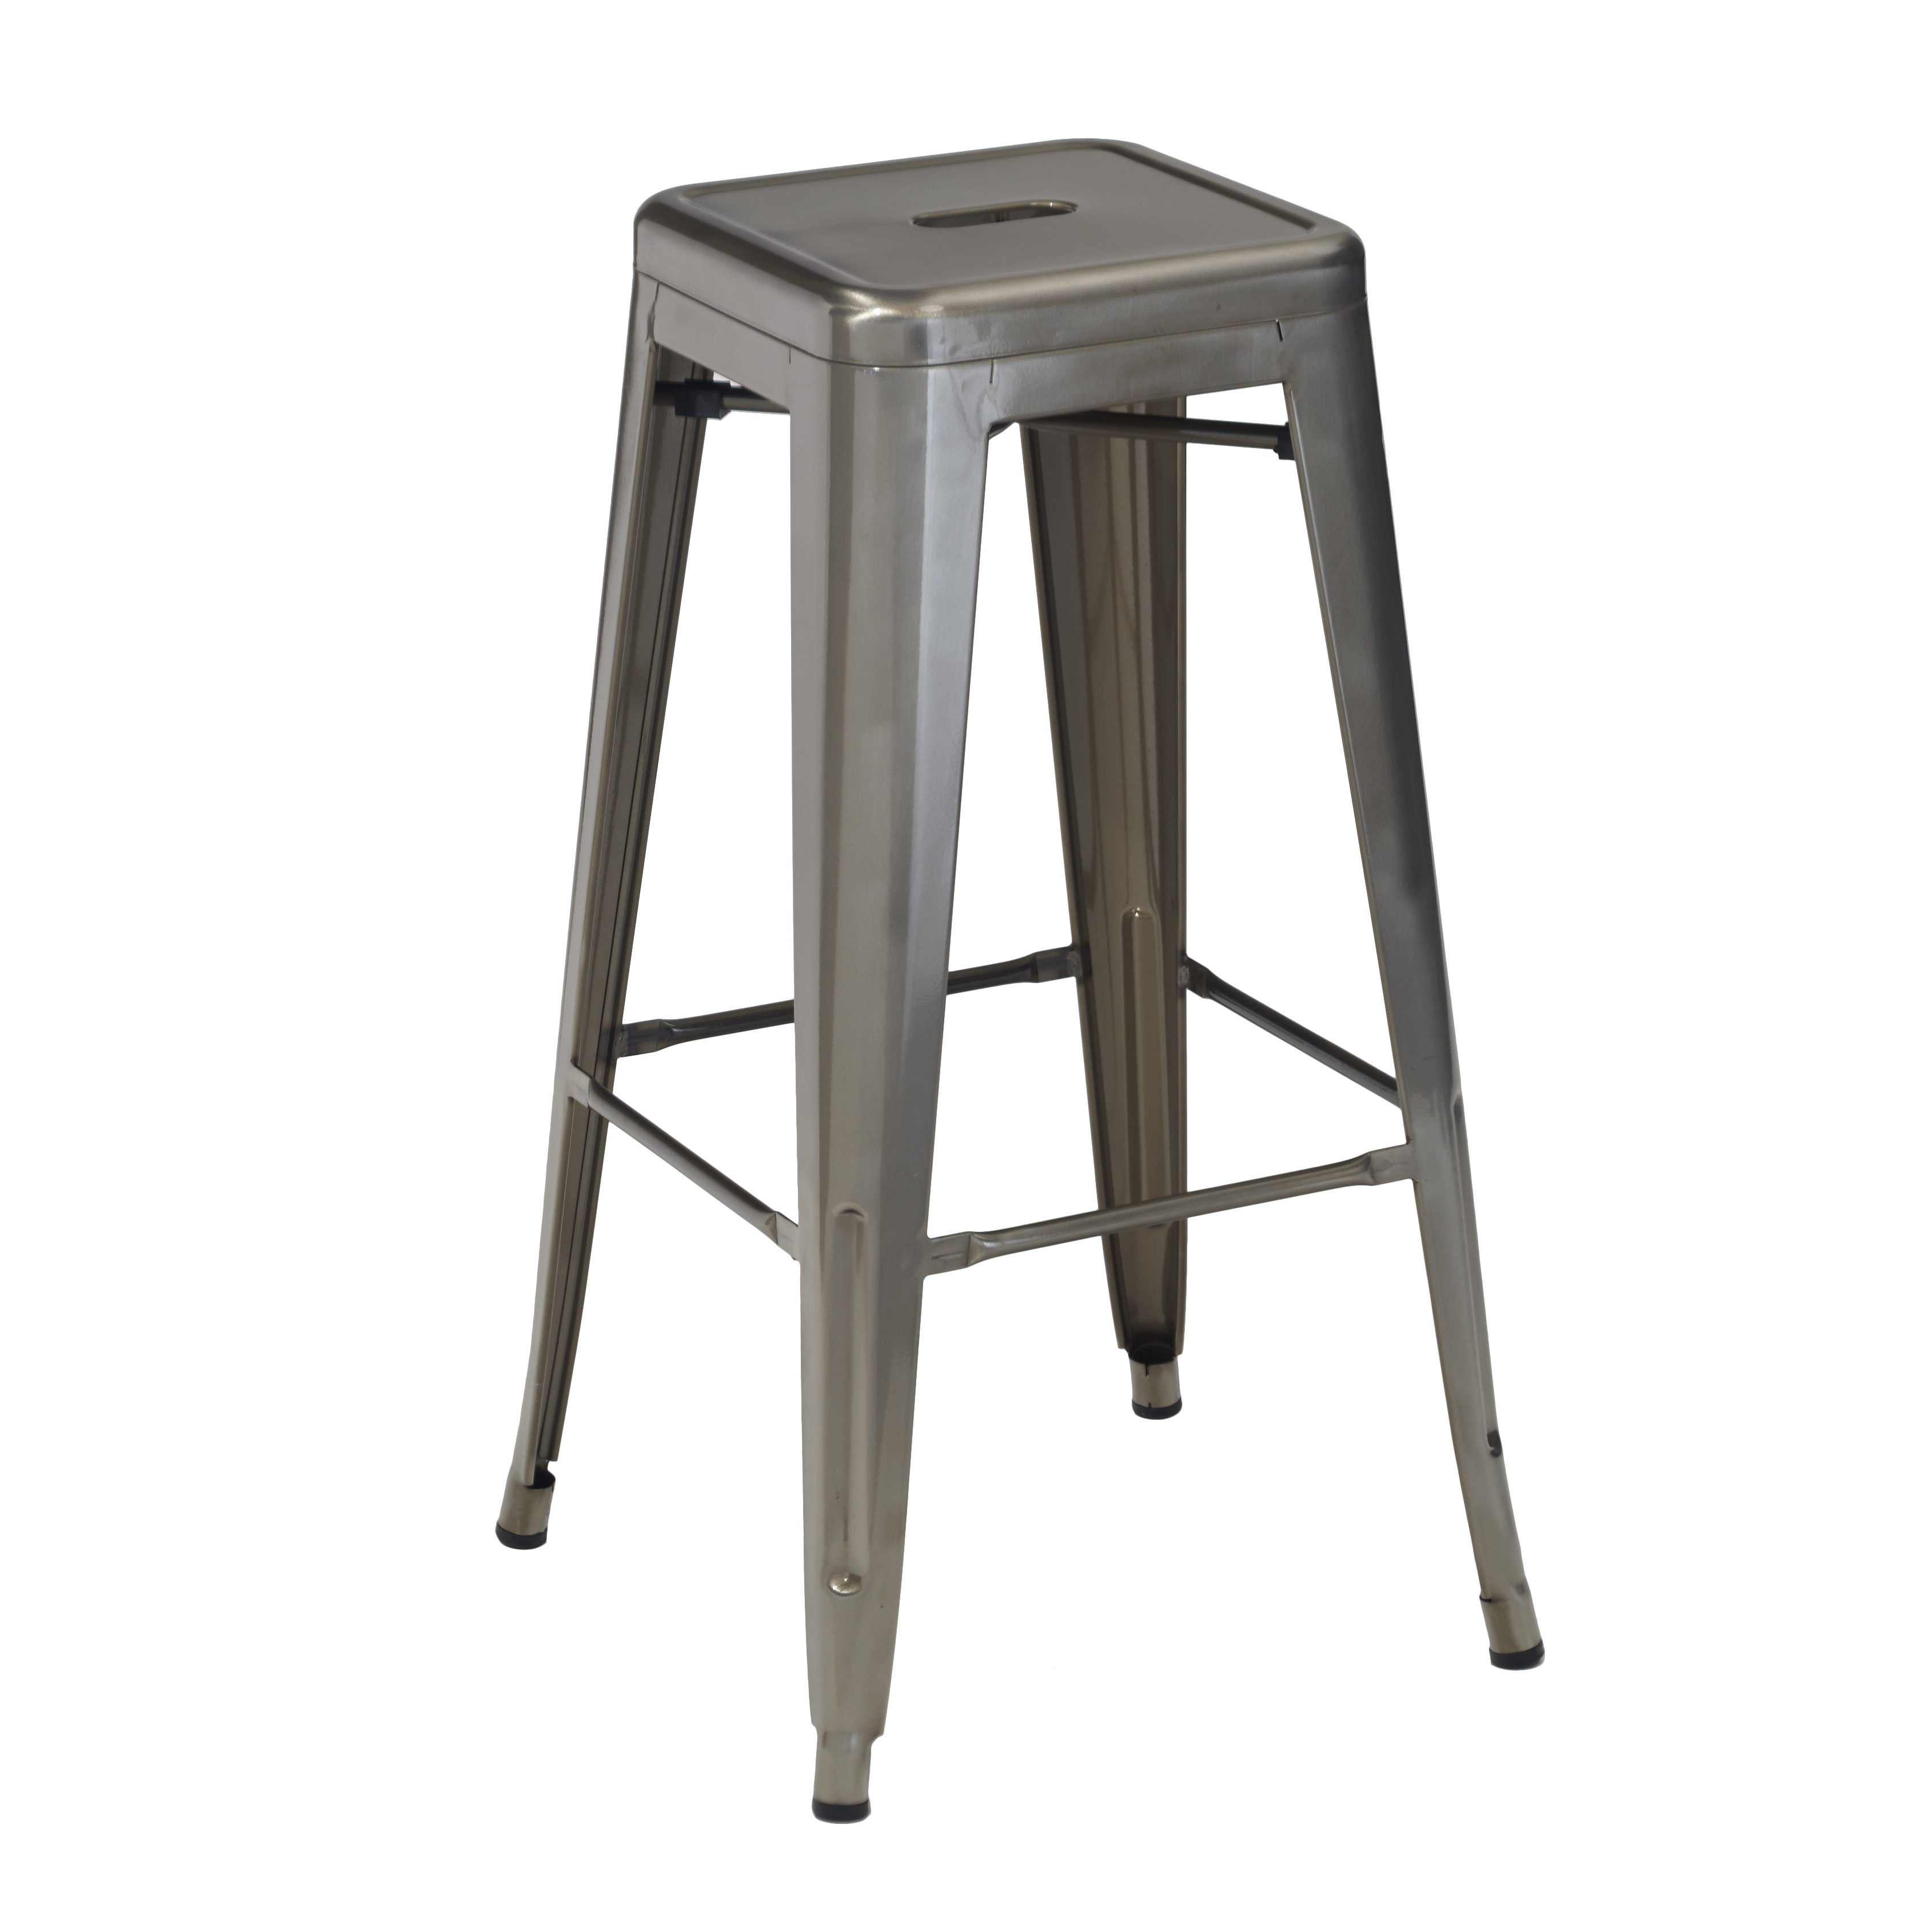 G & A Commercial Seating 600-WS bar stool, indoor